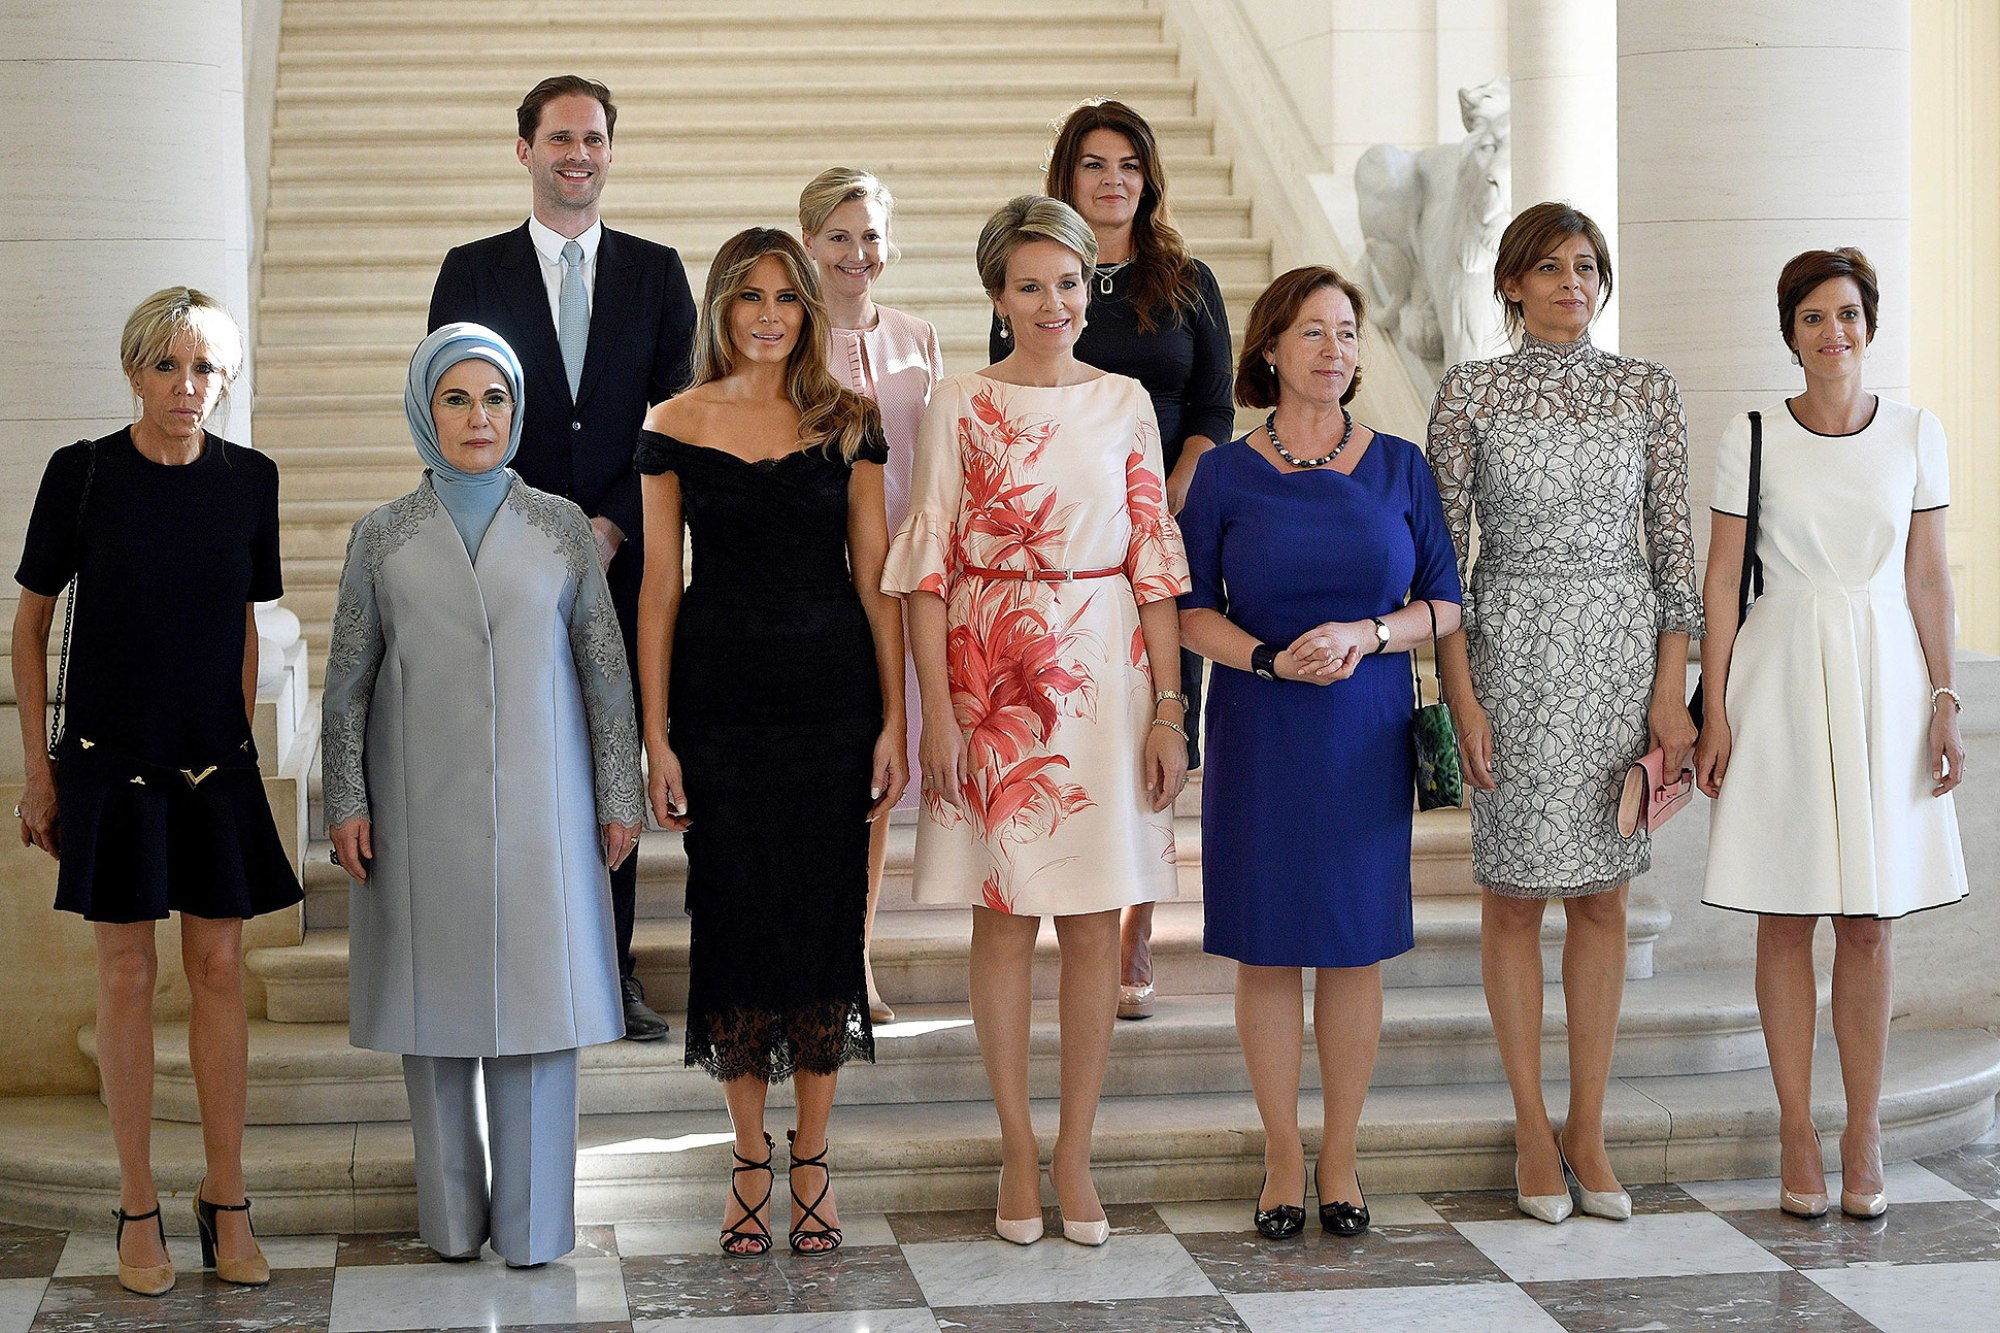 (Front row LtoR) First Lady of France Brigitte Macron, First Lady of Turkey Emine Gulbaran Erdogan, First Lady of the US Melania Trump, Queen Mathilde of Belgium, Stoltenberg's partner Ingrid Schulerud, Partner of Bulgaria's President Desislava Radeva, partner of Charles Michel Amelie Derbaudrenghien, (back row, LtoR) First Gentleman of Luxembourg Gauthier Destenay, partner of Slovenia's Prime Minister Mojca Stropnik and First Lady of Iceland Thora Margret Baldvinsdottir pose for a family photo before a diner of the First Ladies and Queen at the Royal castle in Laken/Laeken, on May 25, 2017, in Brussels. / AFP PHOTO / BELGA / YORICK JANSENS / Belgium OUT (Photo credit should read YORICK JANSENS/AFP/Getty Images)